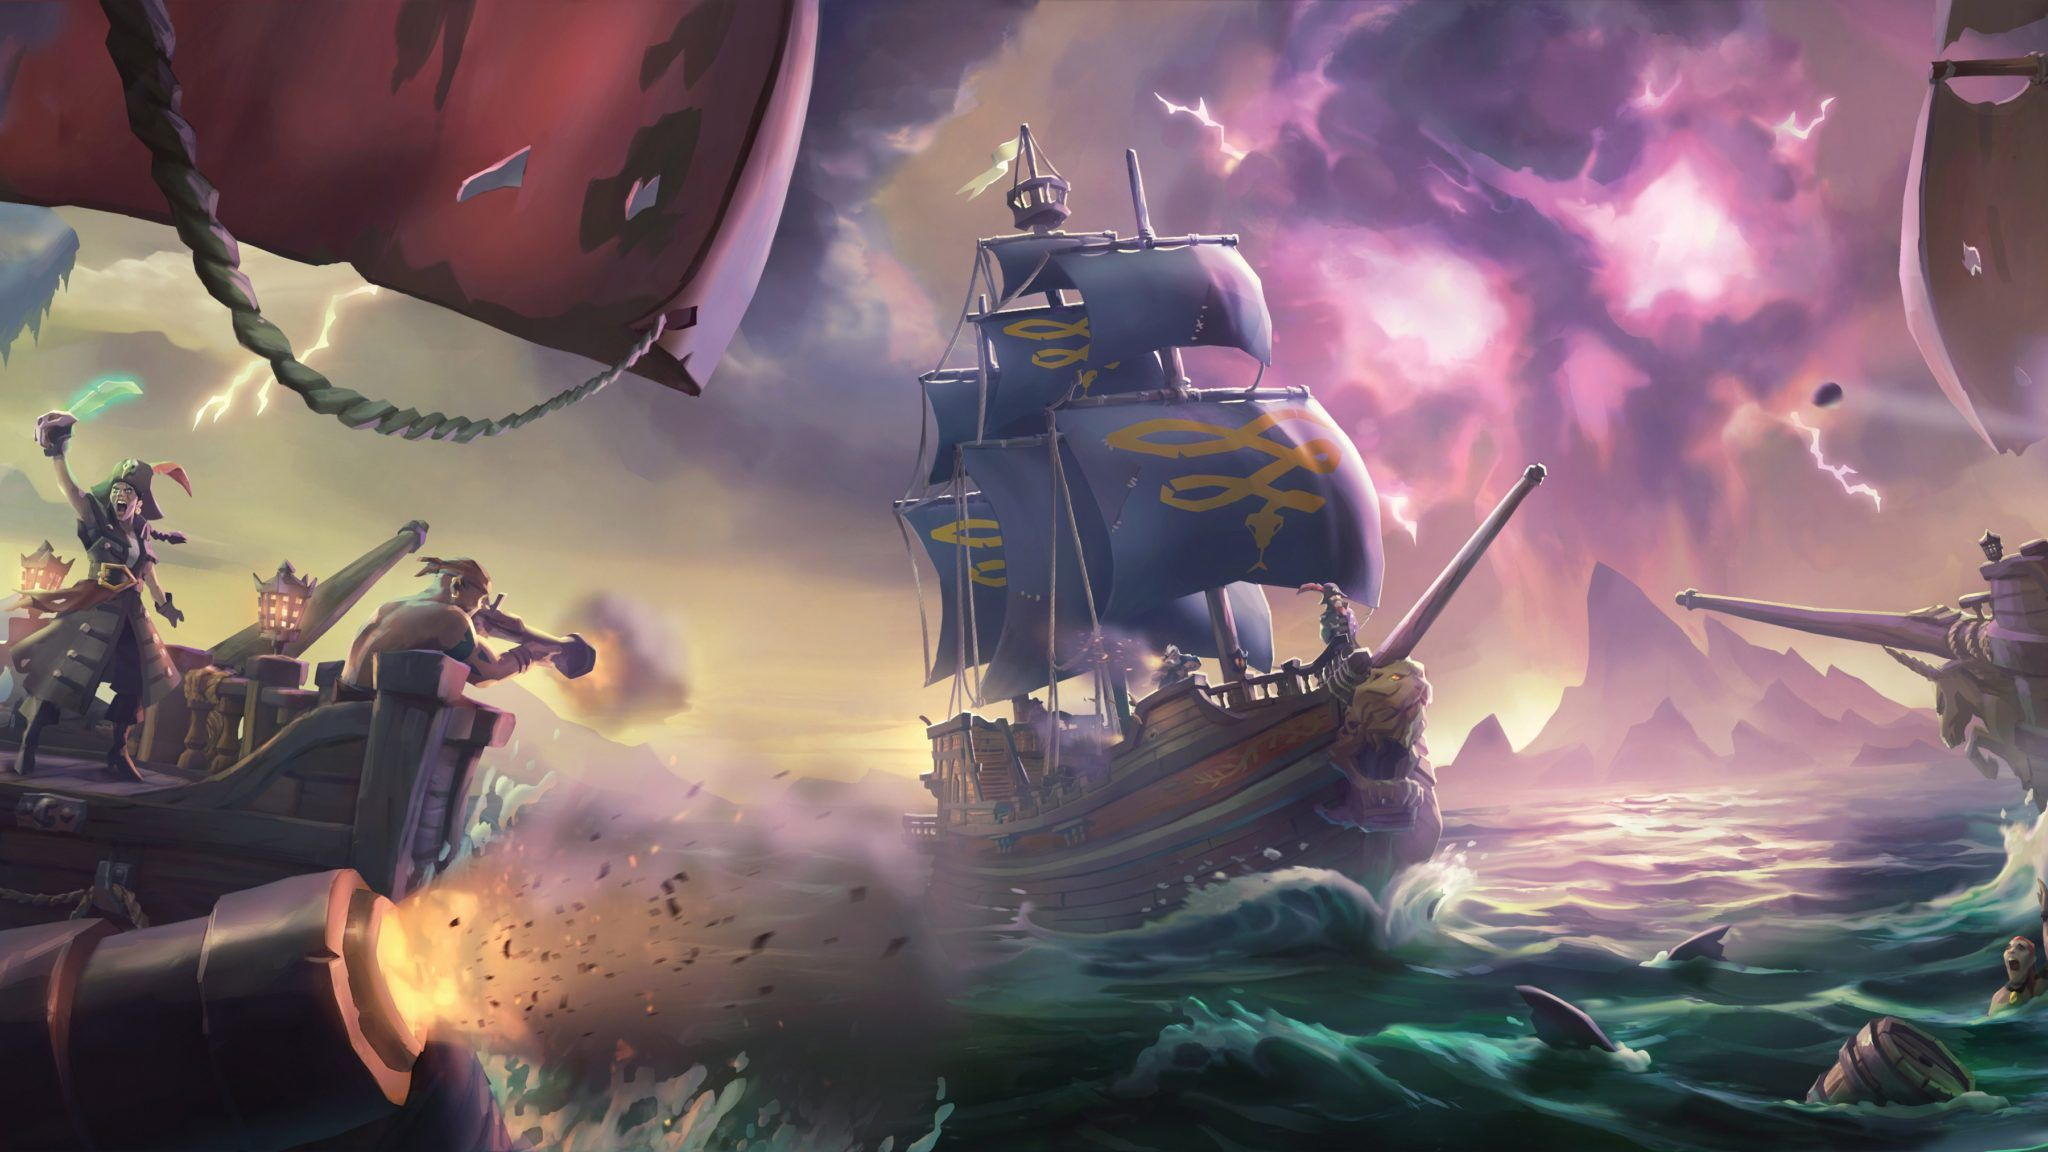 Sea Of Thieves Wallpapers Top Free Sea Of Thieves Backgrounds